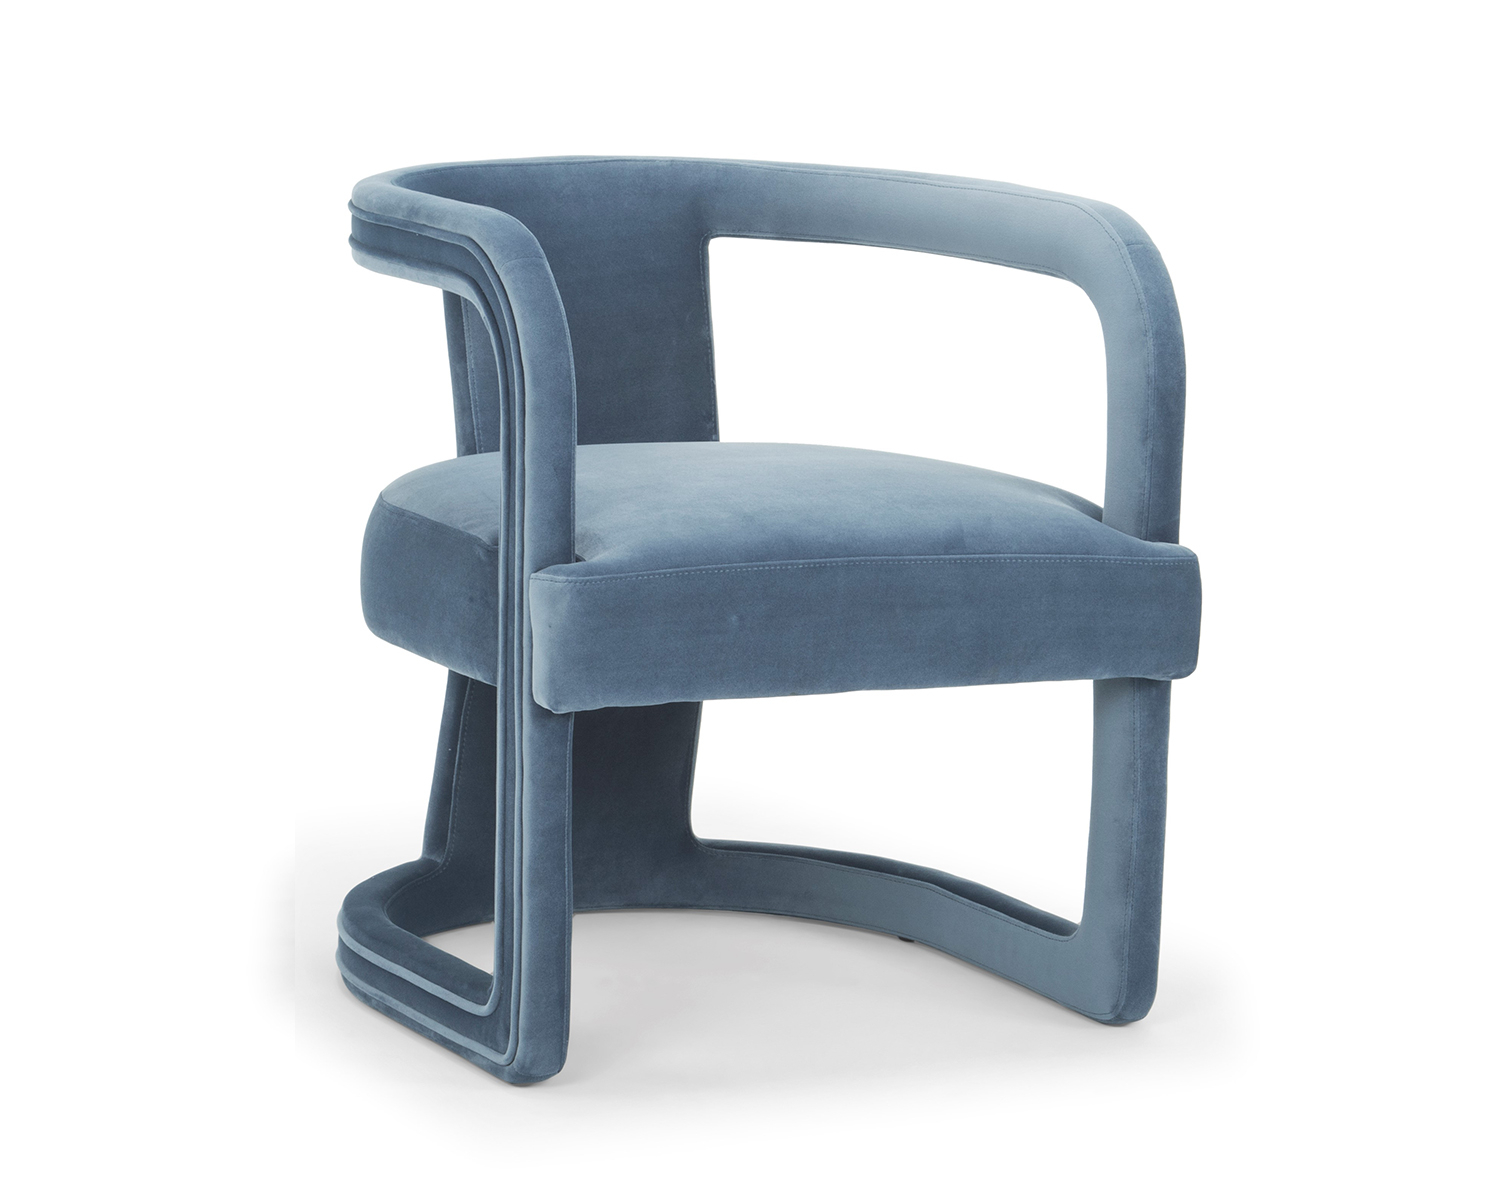 Rory – Urbia Furniture Throughout Rory Sofa Chairs (View 25 of 25)